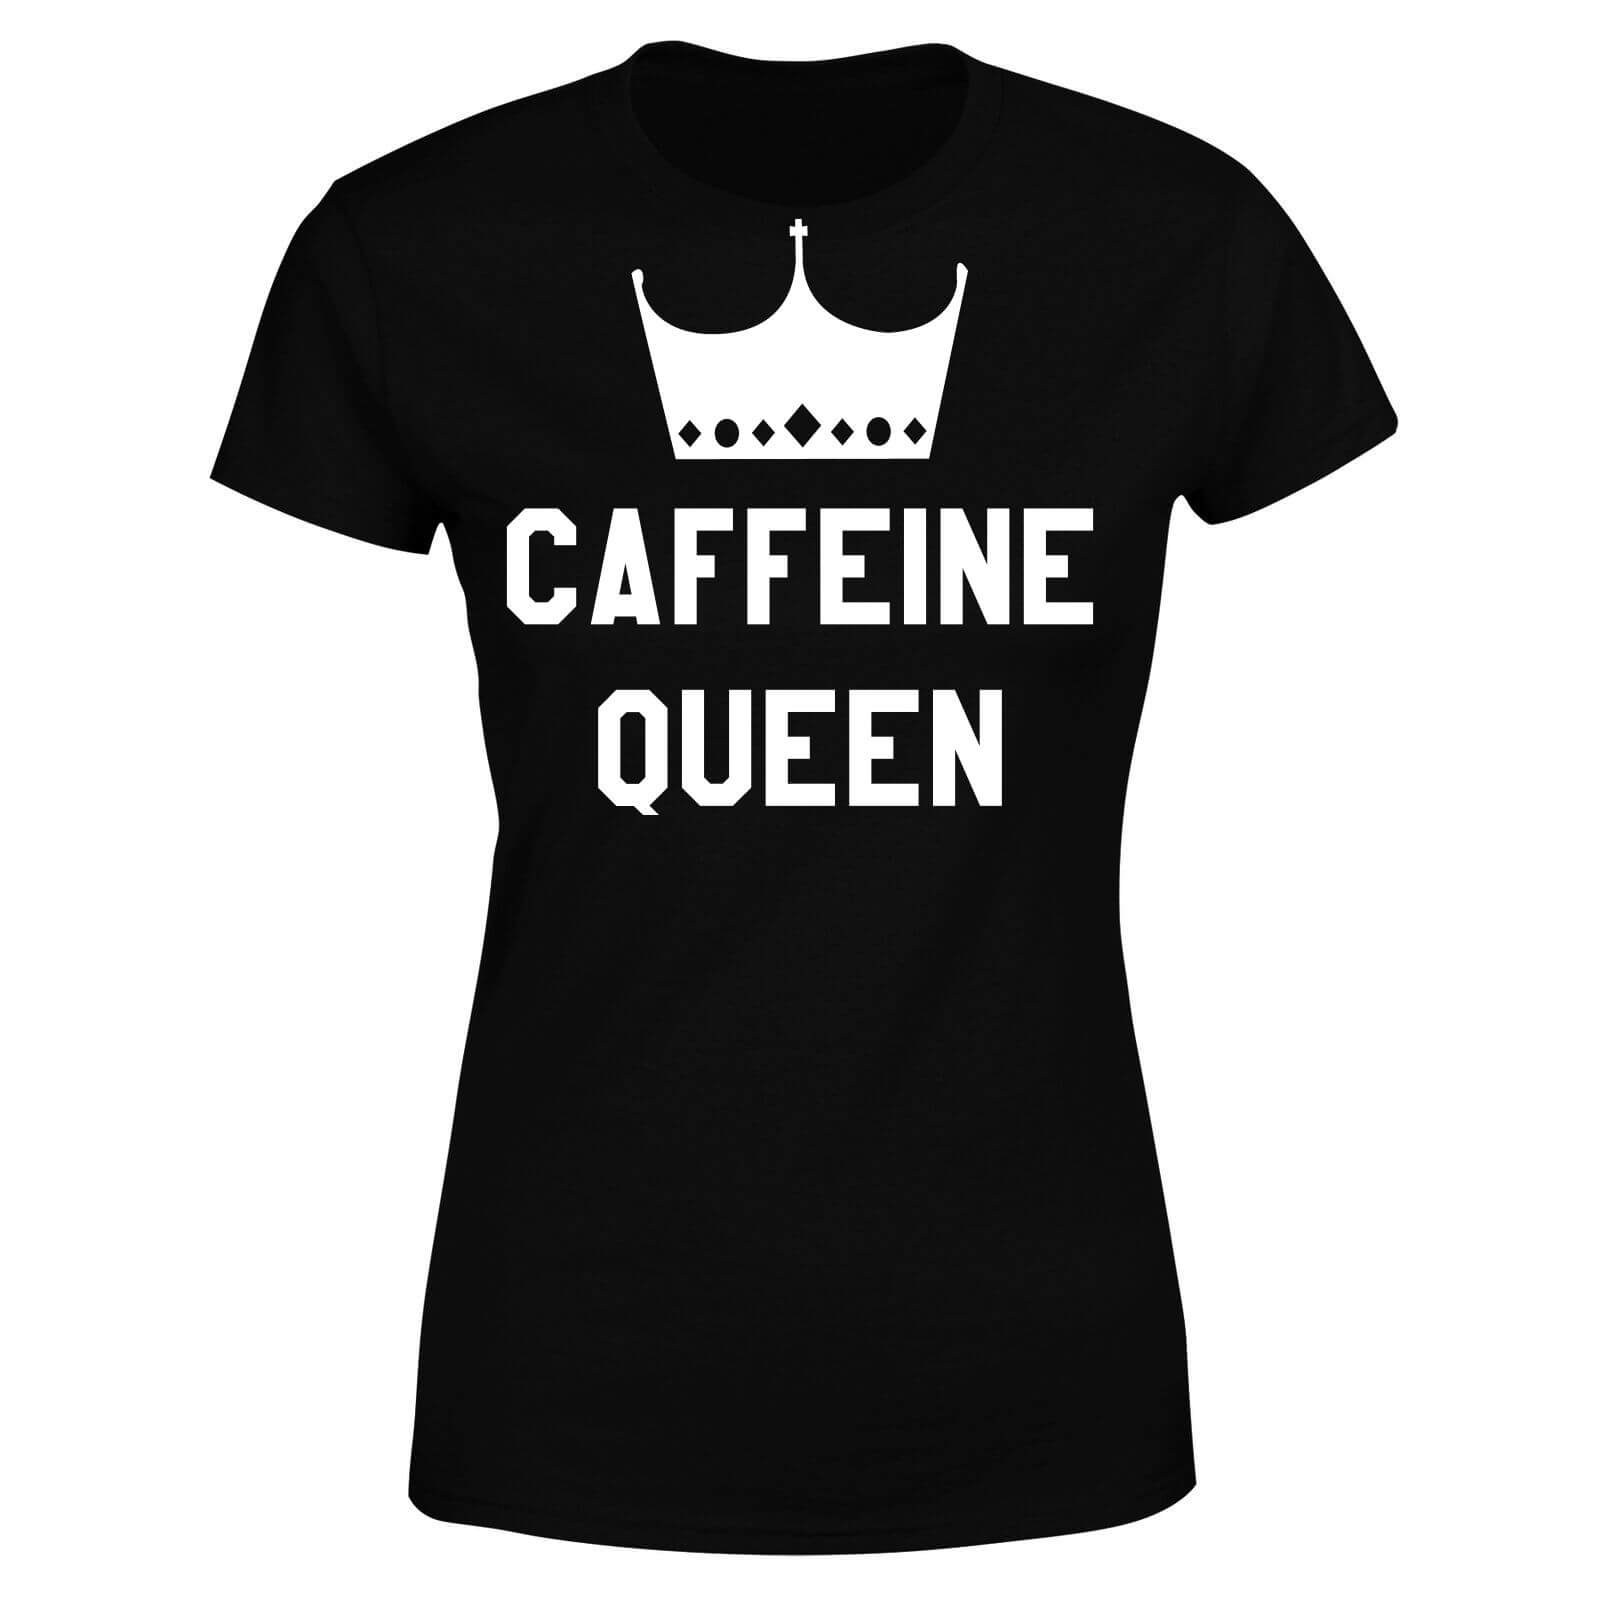 Caffeine Queen Women